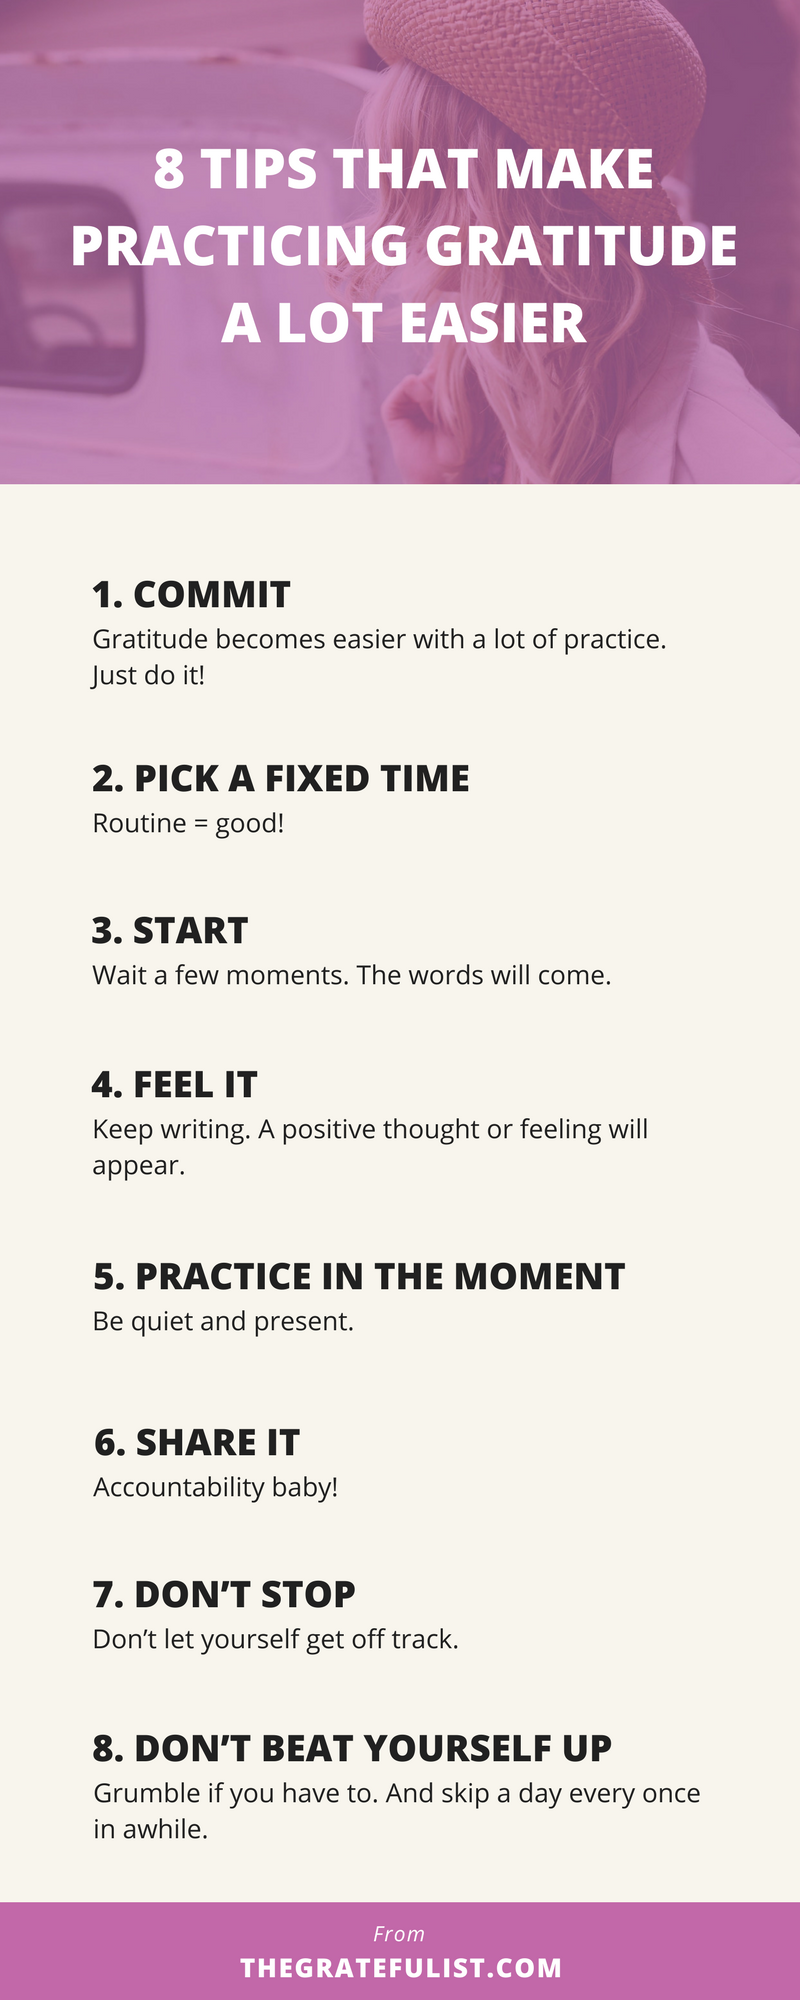 Useful and practical advice for soul-connected yet stressed-out creatives (that's you creative entrepreneurs, bloggers, photographers, designers, and handmade business owners!)who want to build up their gratitude mojo. Click through to read all about the 8 strategies you can use when starting a gratitude practice.In case you're ever in a gratitude slump, I created a free printable checklist.Grab it and use it as a prompt or reminder whenever you feel your motivation waning or can't think of a thing to feel grateful for.